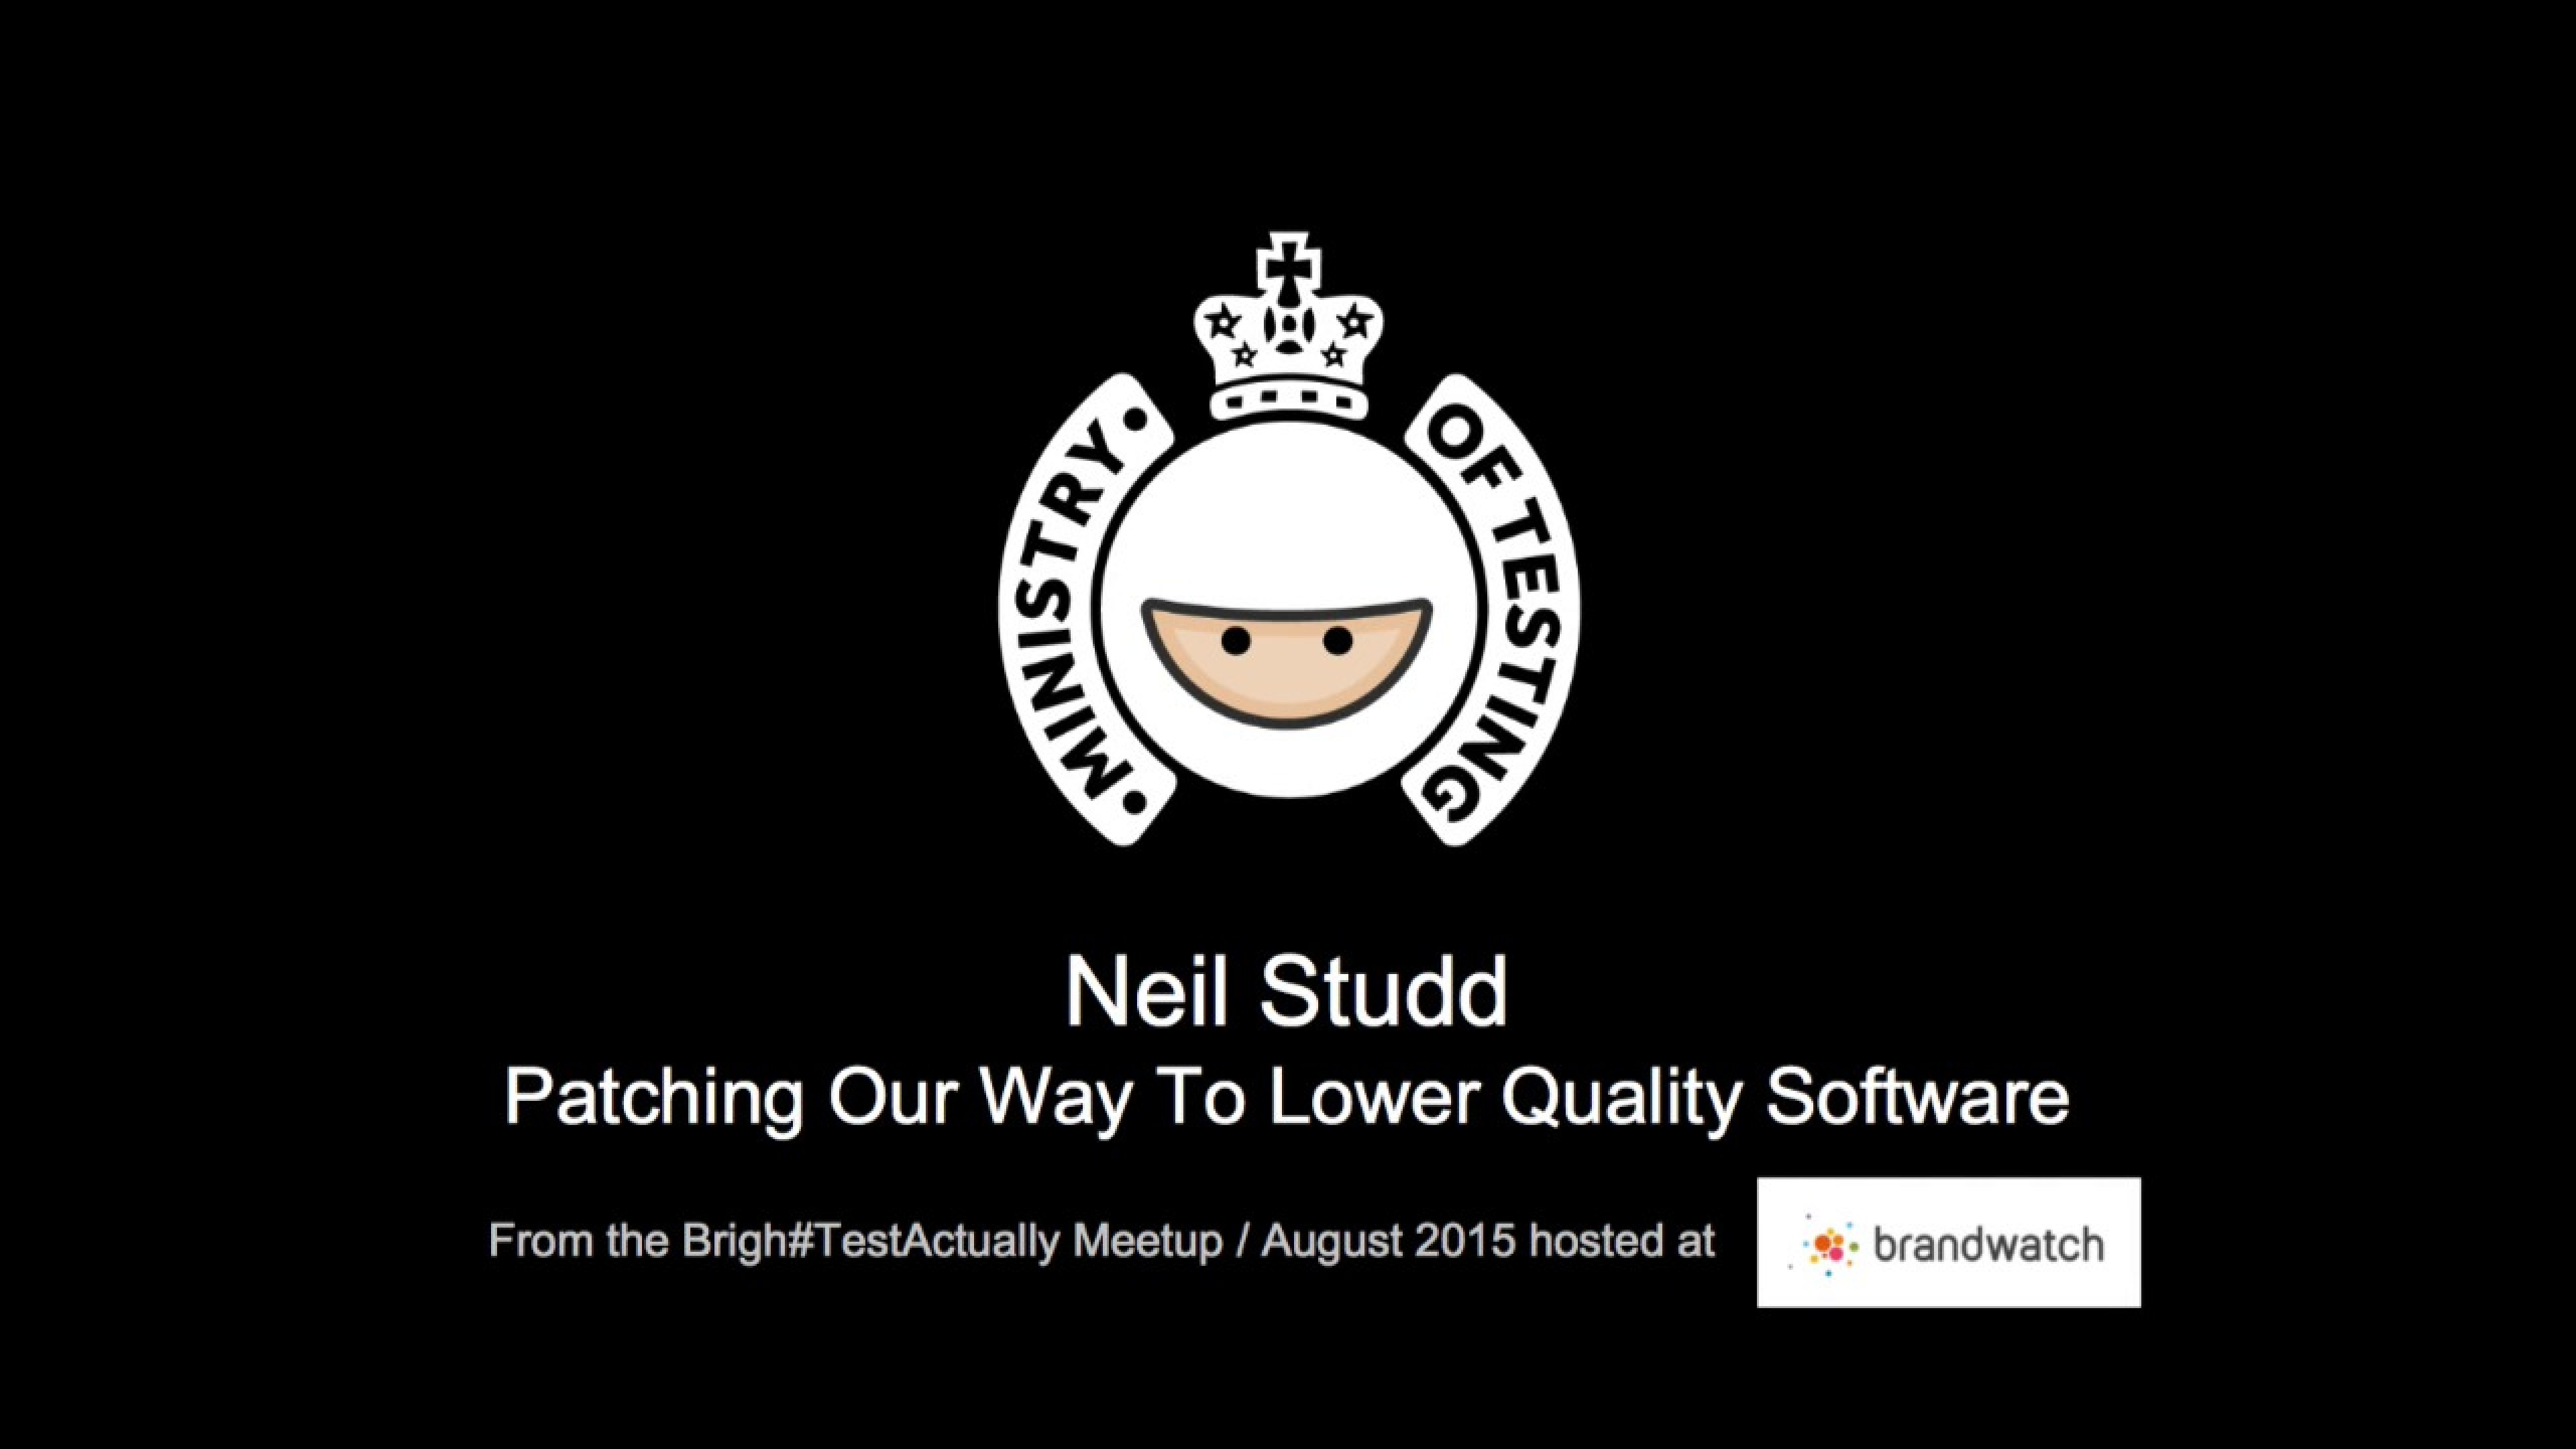 Patching Our Way To Lower Quality Software - Neil Studd